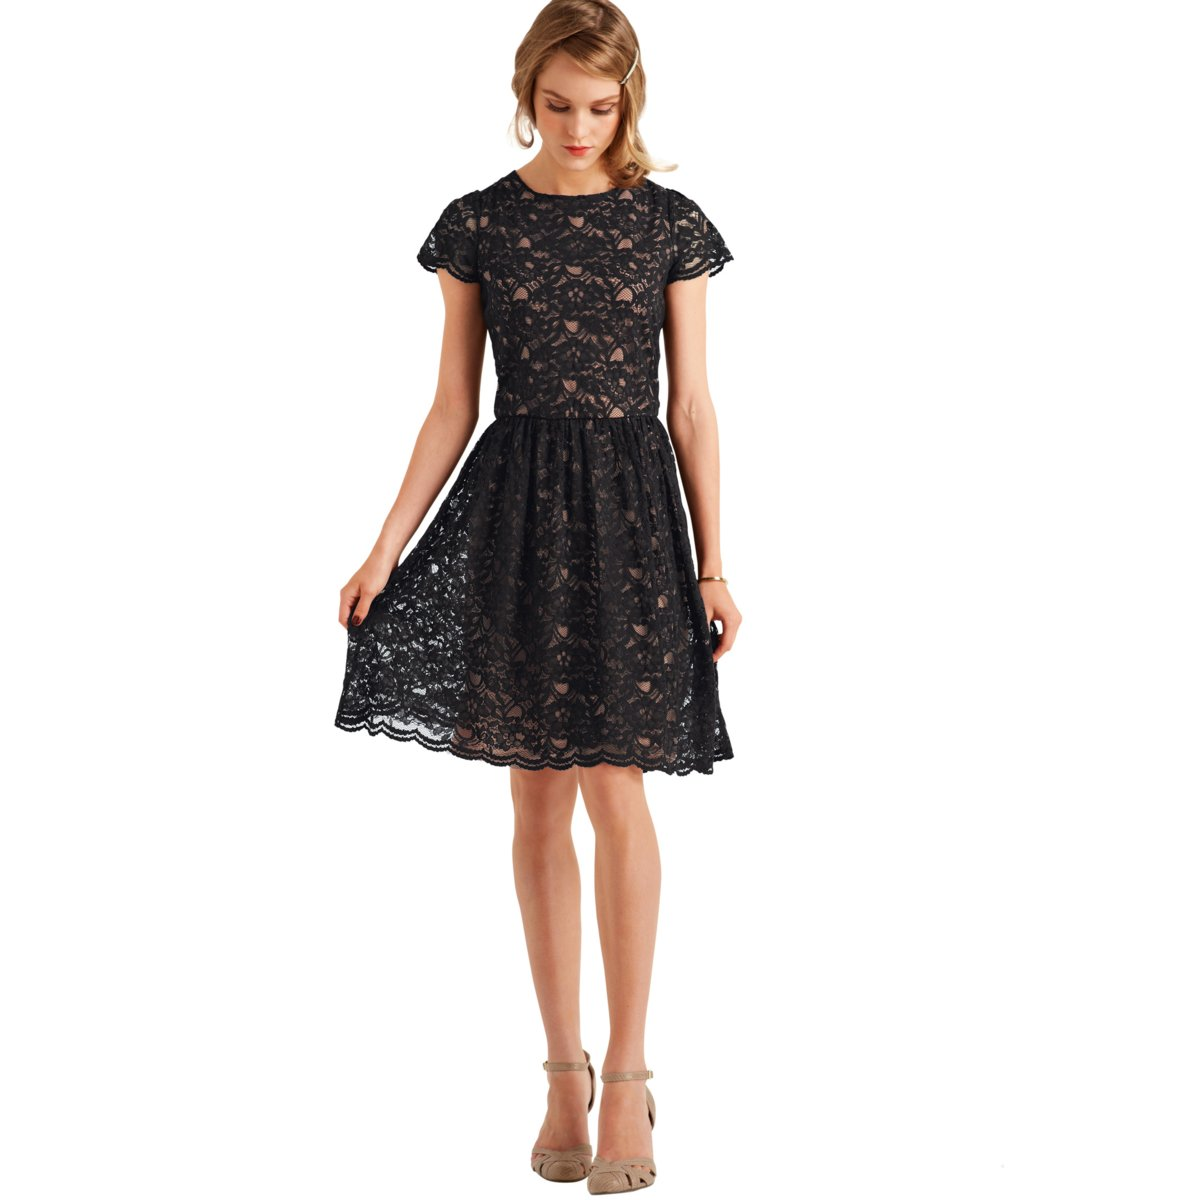 La Redoute - Short-Sleeved Lace Dress with Elasticated Waist